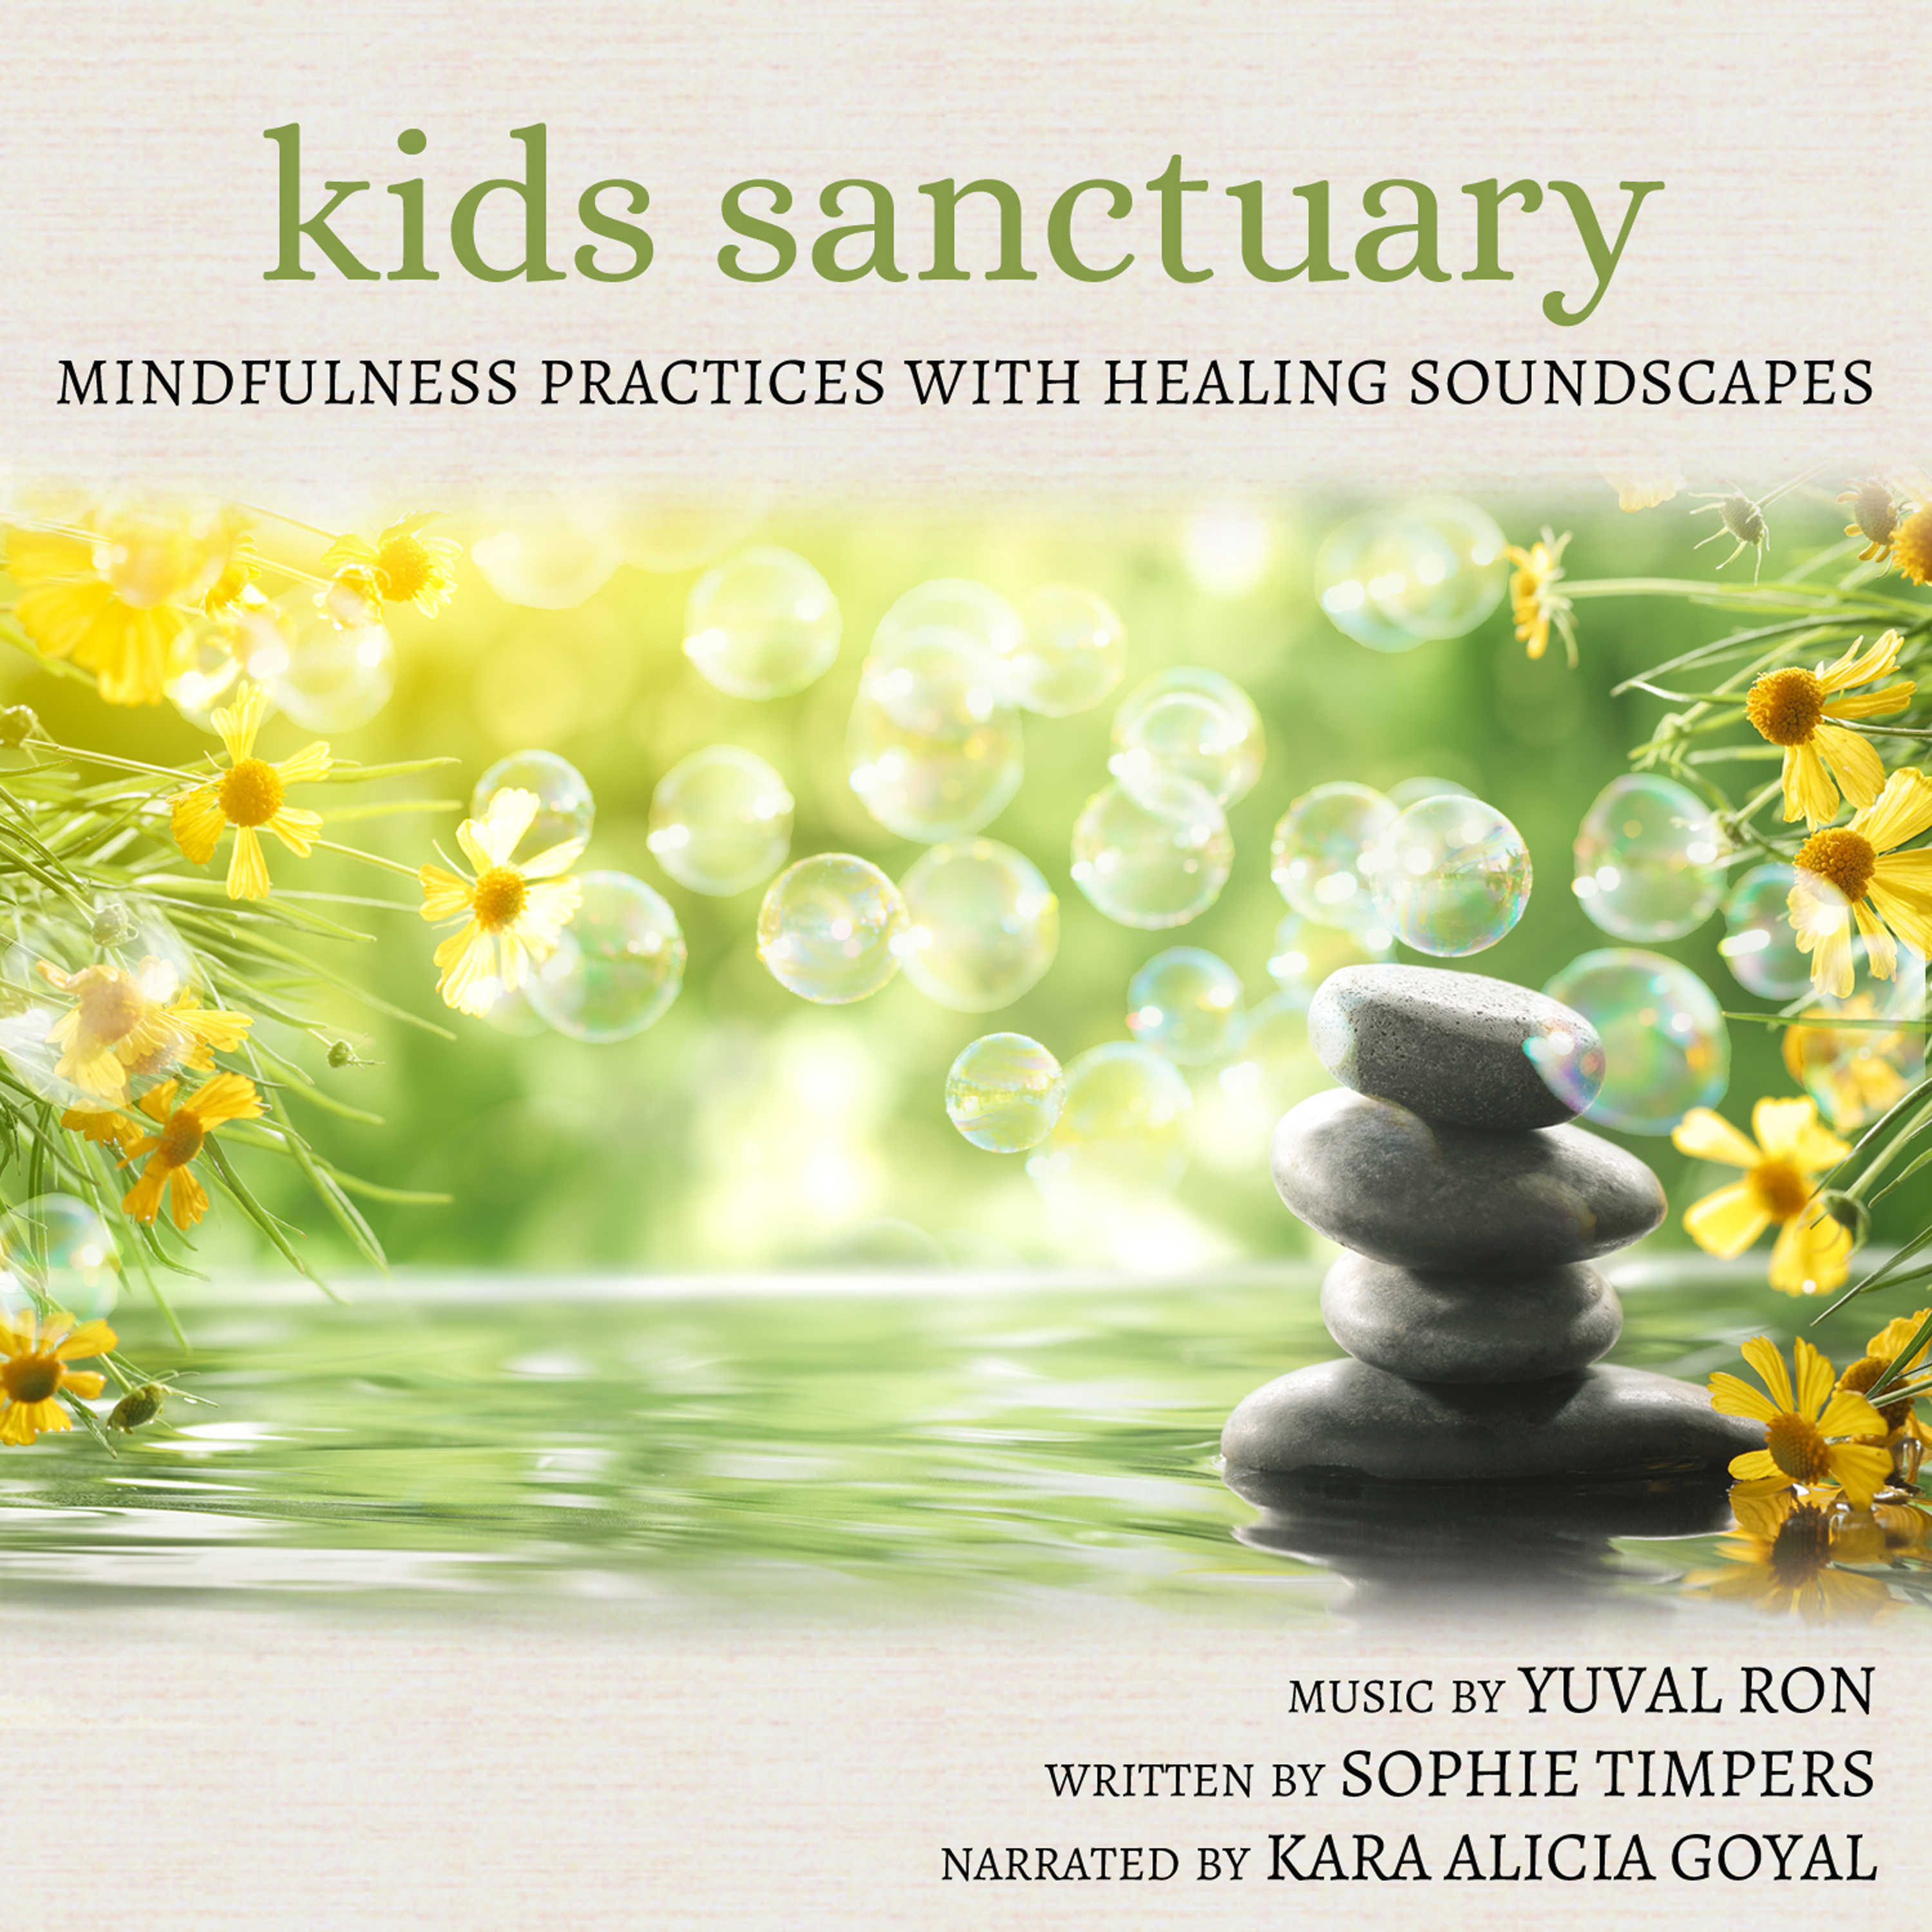 Yuval Ron's Latest Album Promotes Children's Wellbeing Through Mindfulness